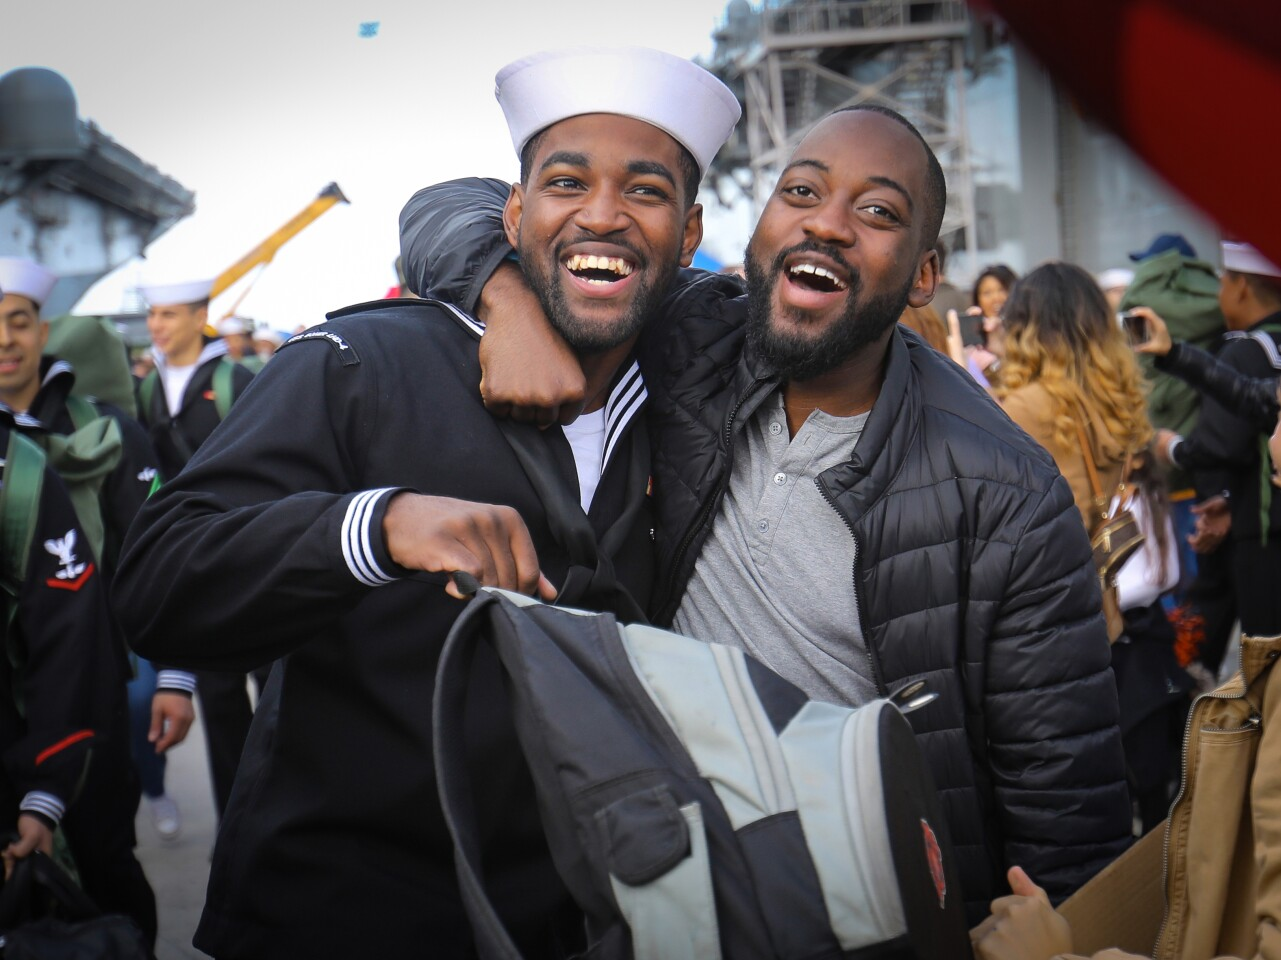 Navy Petty Officer 1st Class Elijah Abdullah, a crew member on the USS Boxer, the flagship of the Boxer Amphibious Ready Group, was greeted by his brother, Mustafa Abdullah Jr., after he arrived at Naval Base San Diego, November 27, ending a seven-month deployment,